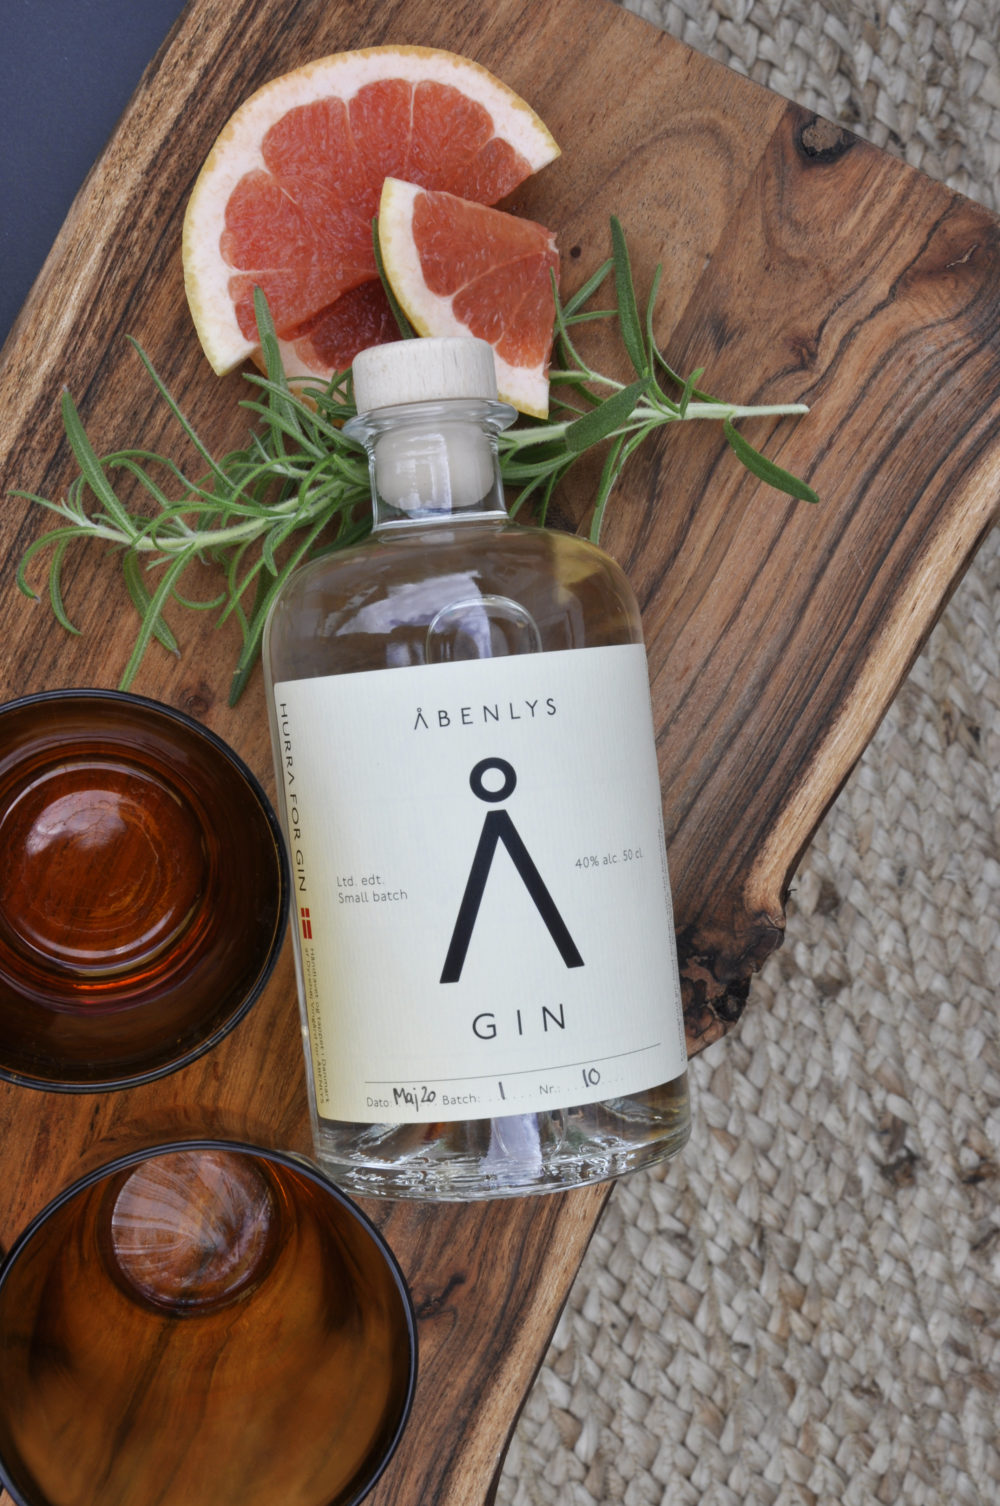 Åbenlys Gin Limited edition – Hurra for gin